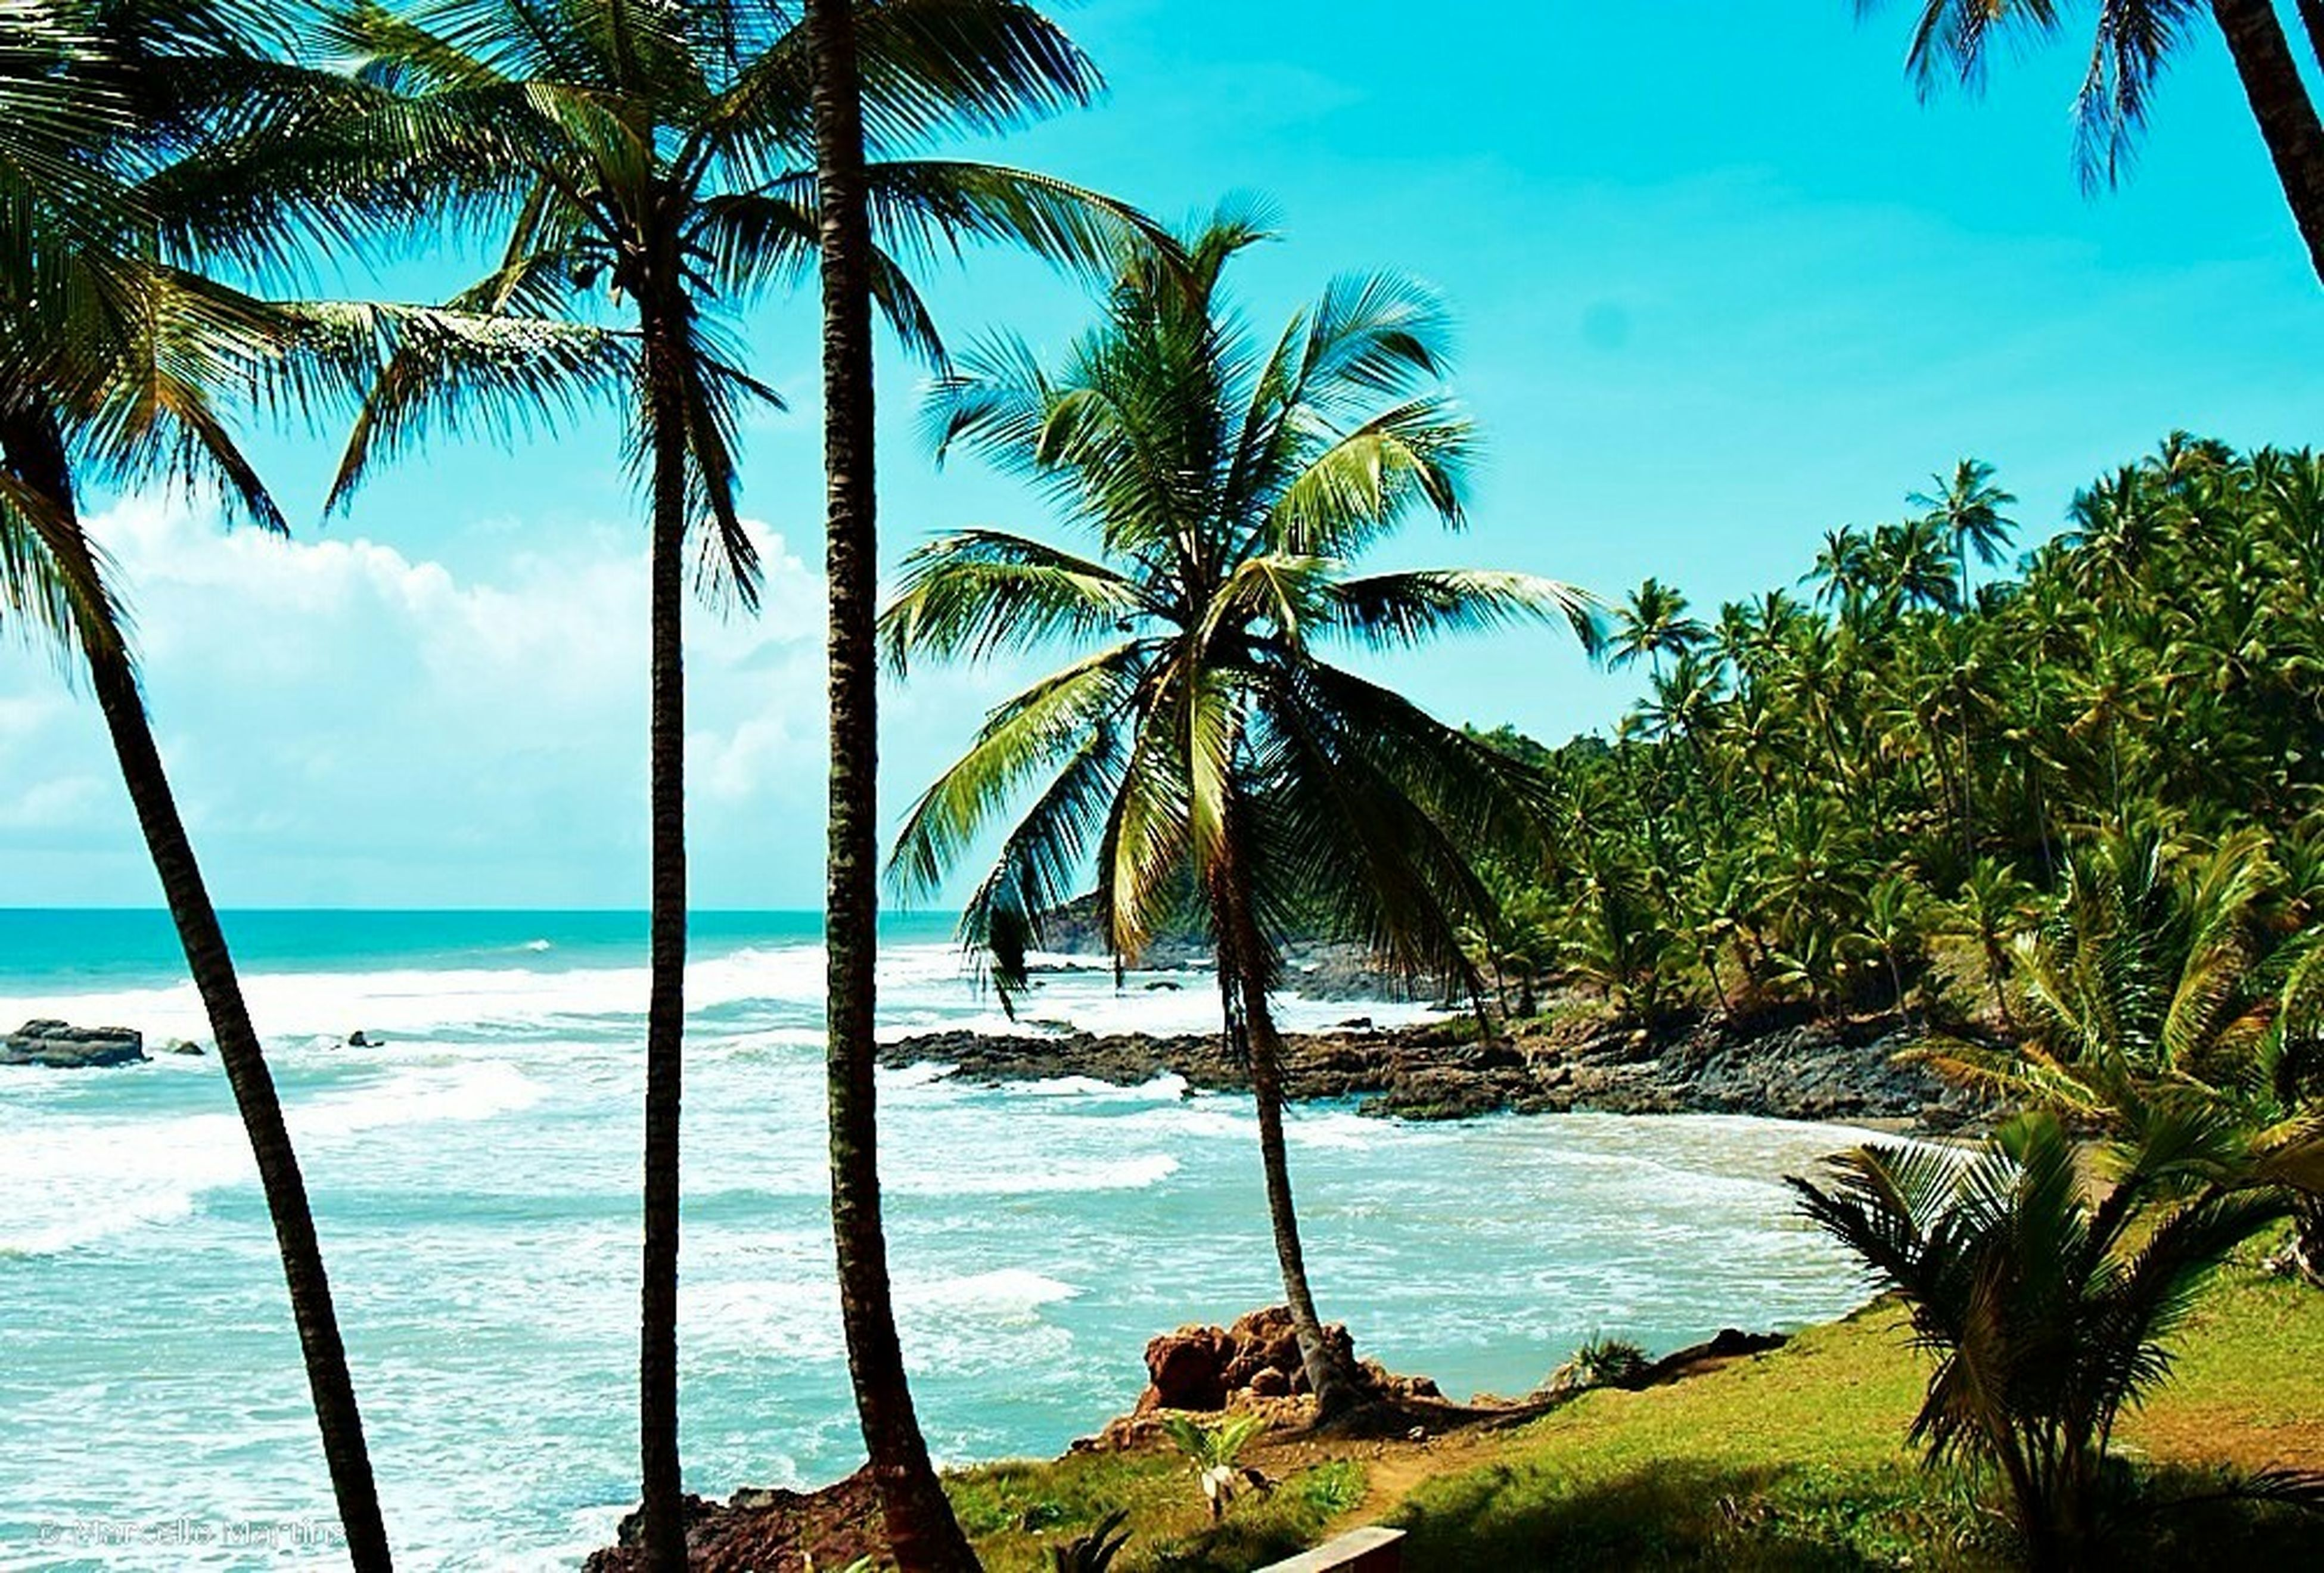 sea, palm tree, water, tree, horizon over water, beach, tranquility, tranquil scene, scenics, tree trunk, beauty in nature, sky, nature, shore, growth, blue, idyllic, branch, tropical climate, coastline